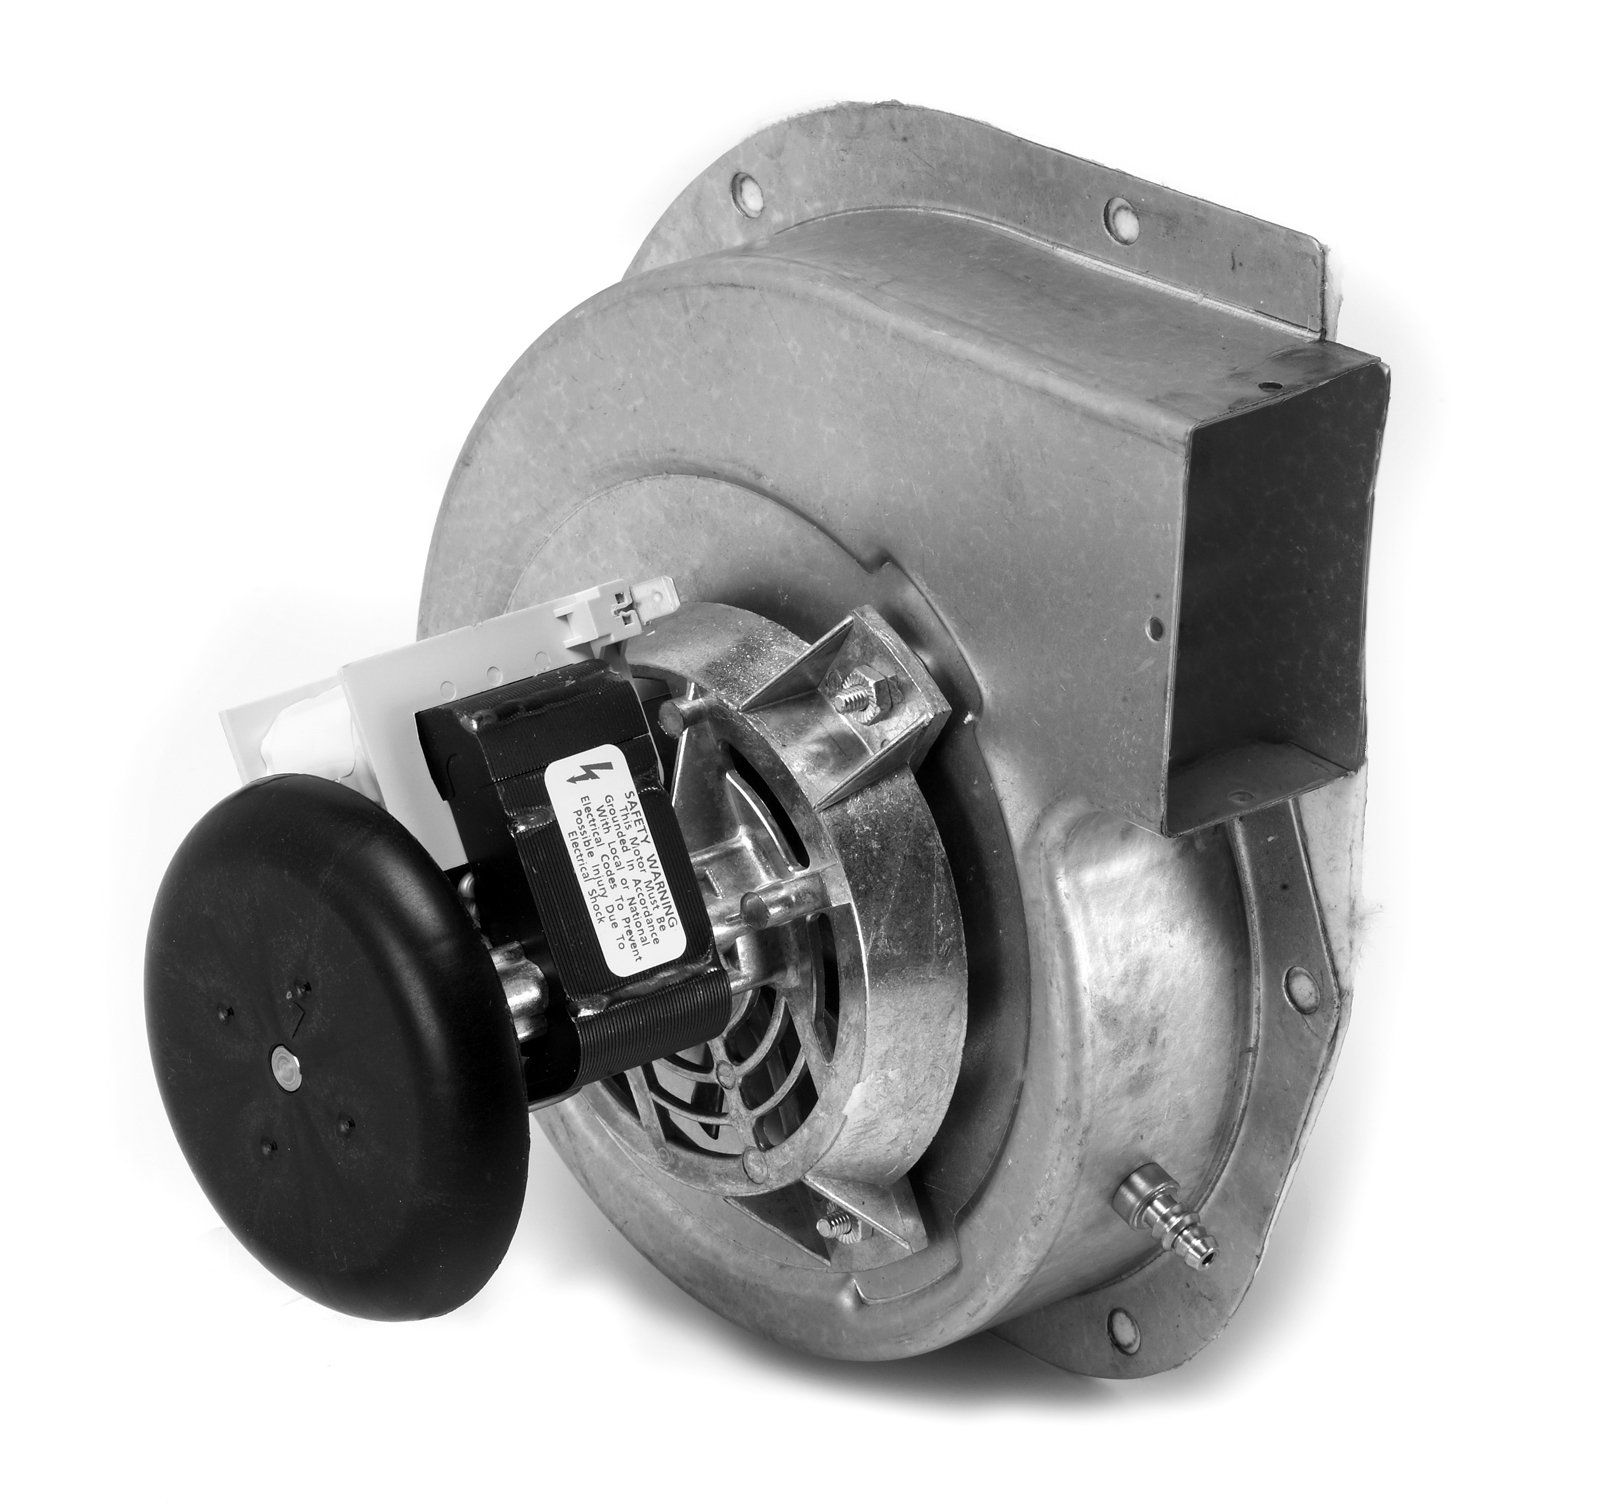 Fasco A182 3.3'' Frame Shaded Pole OEM Replacement Specific Purpose Blower with Sleeve Bearing, 1/35HP, 3,125 rpm, 115V, 60 Hz, 1.2 amps